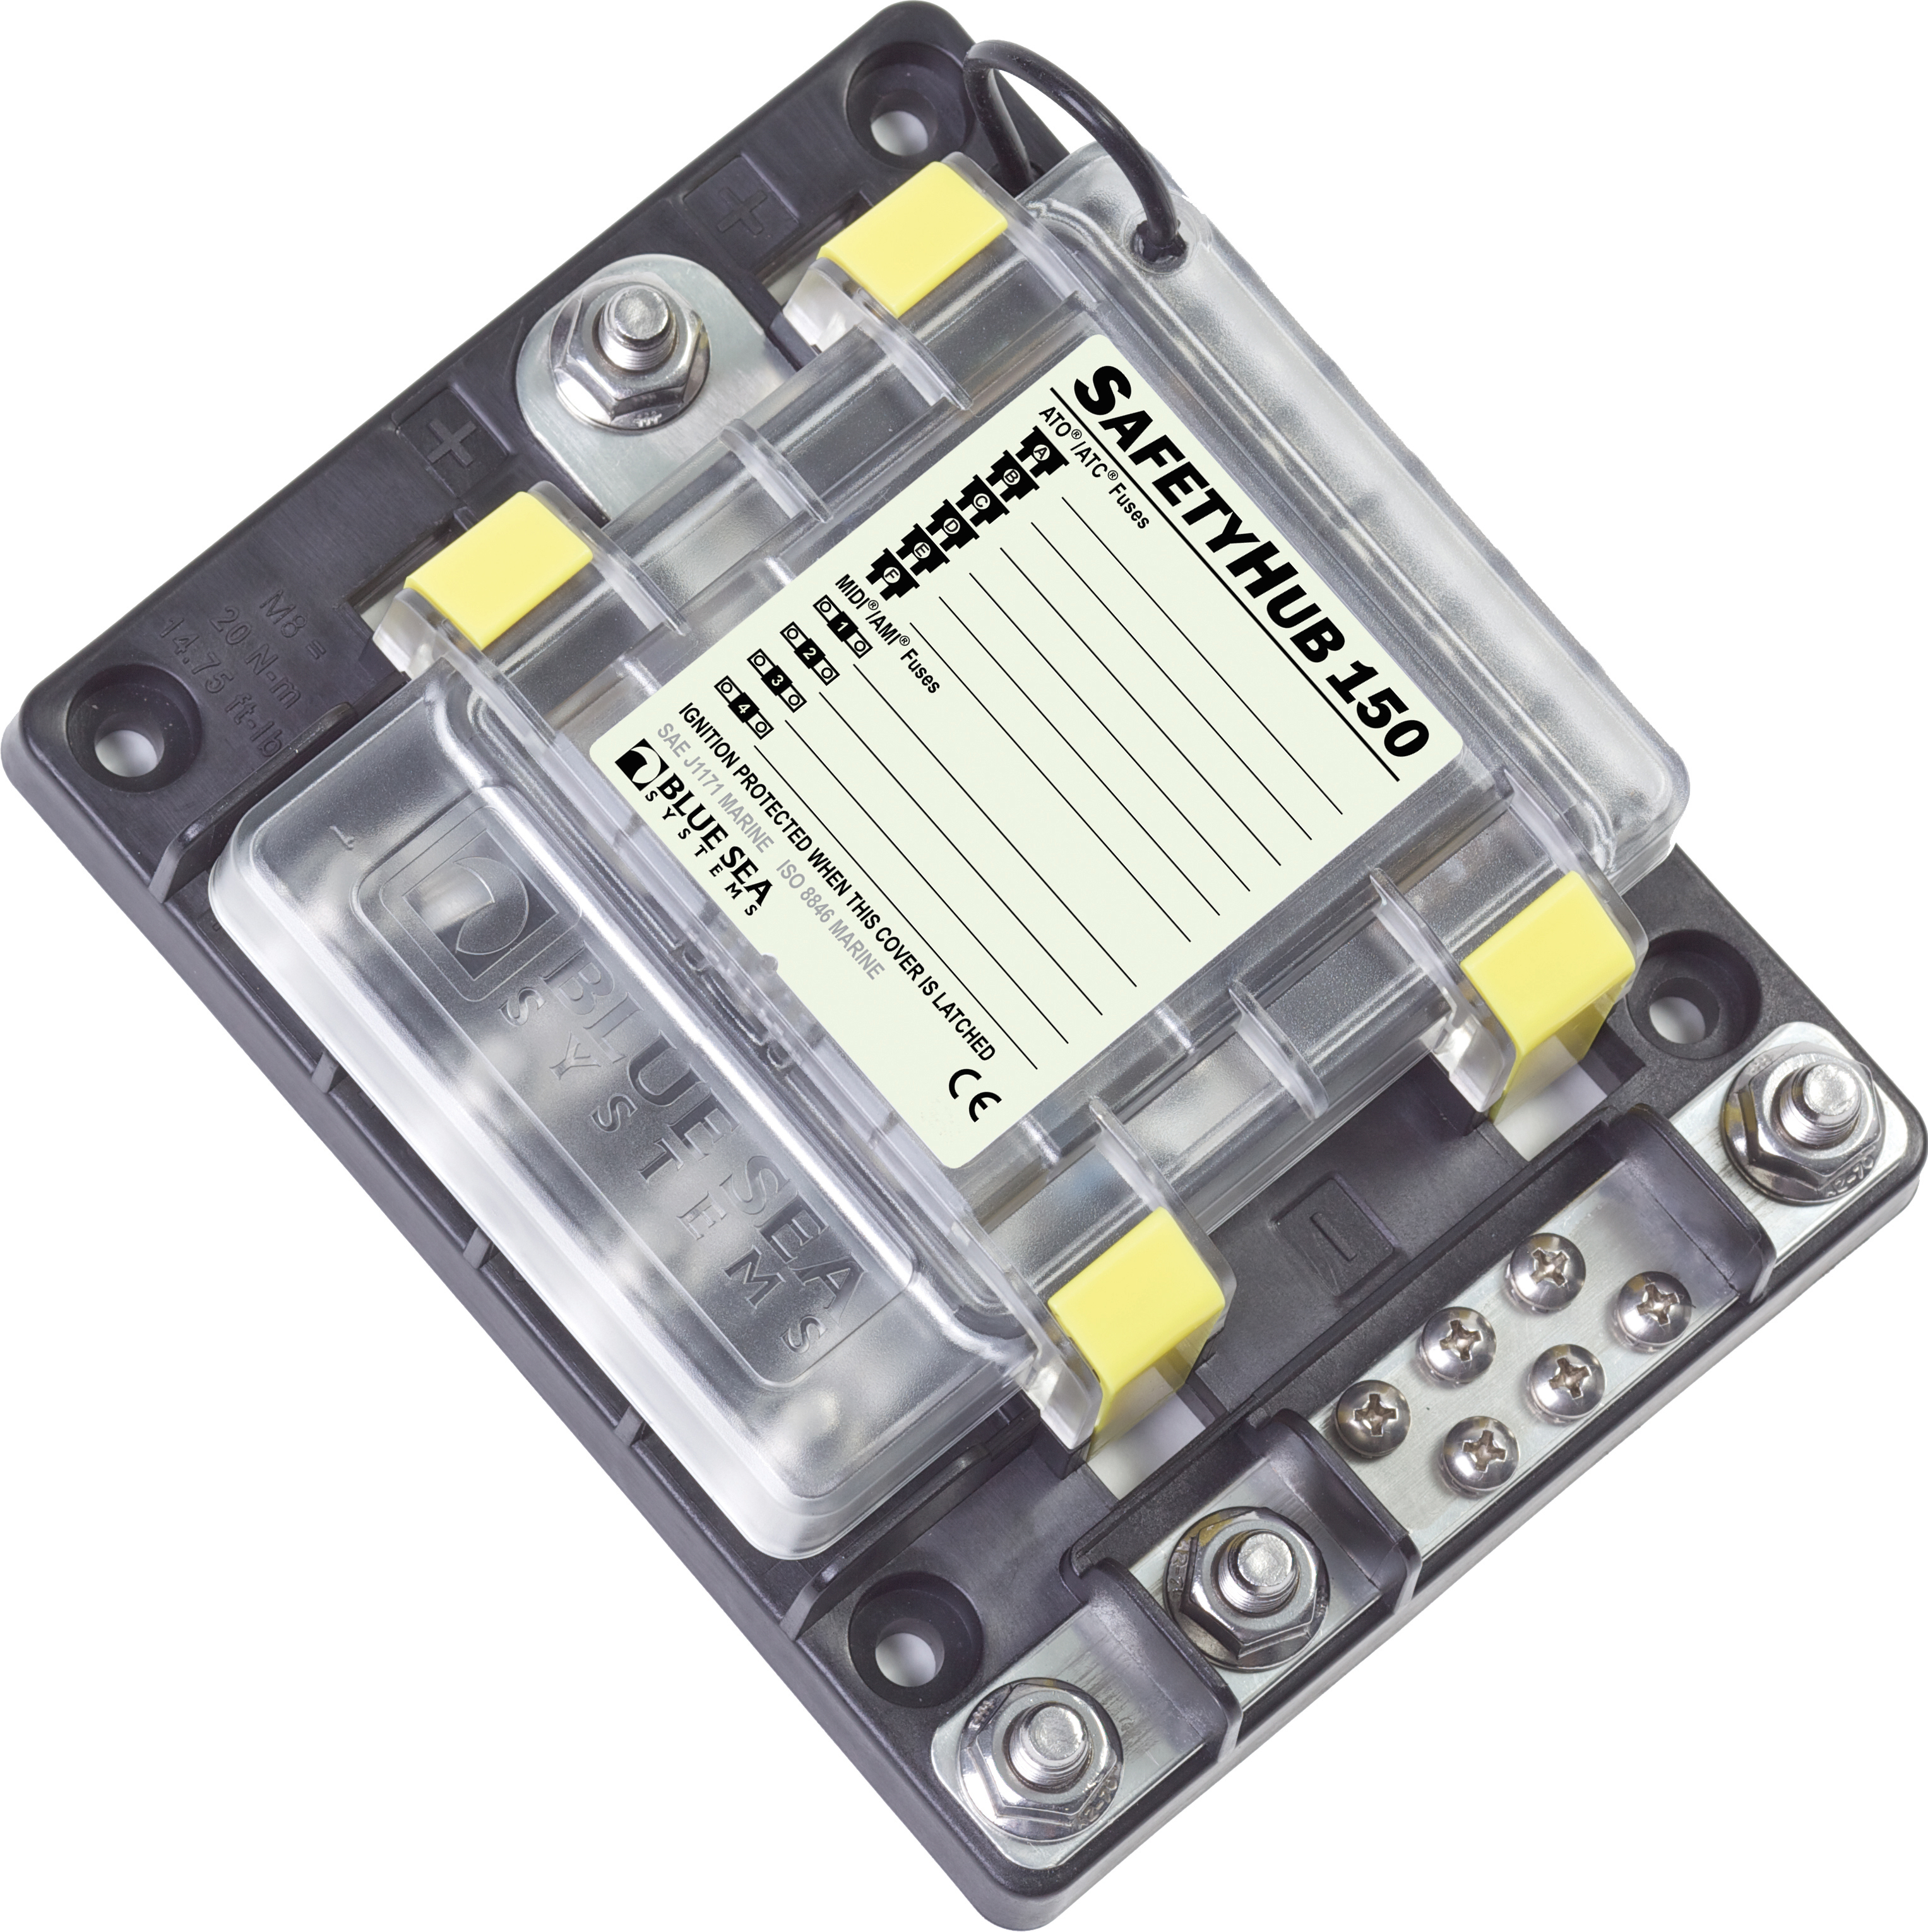 Safetyhub 150 Fuse Block Blue Sea Systems Smart Fortwo Box